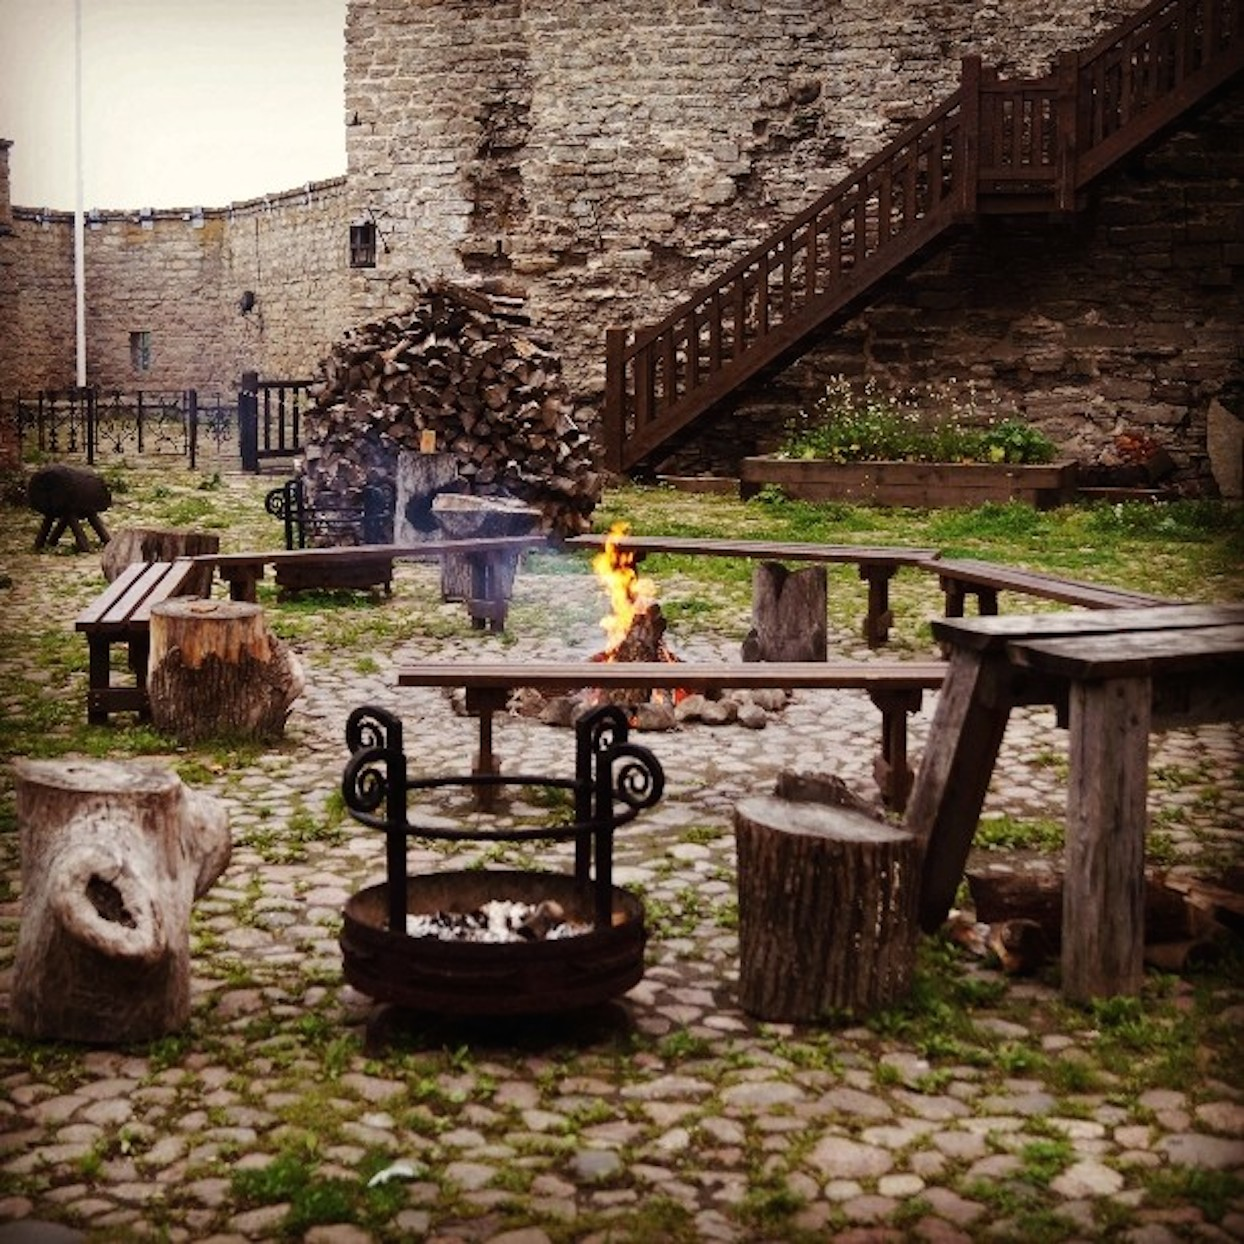 Narva: Fireplace